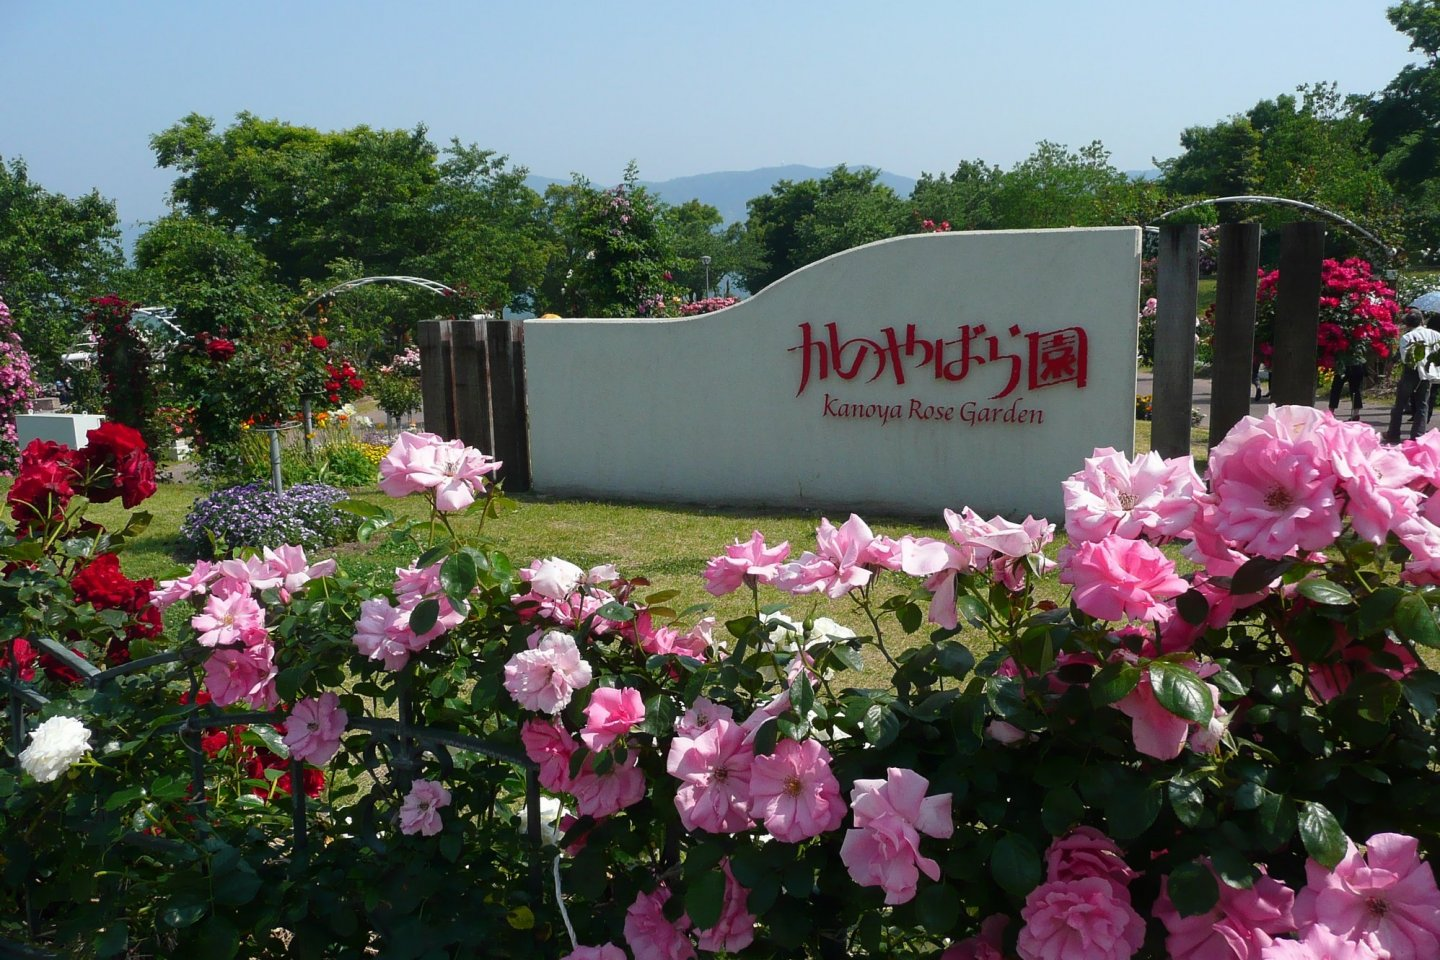 The Kanoya Rose Garden is Japan\'s largest rose garden